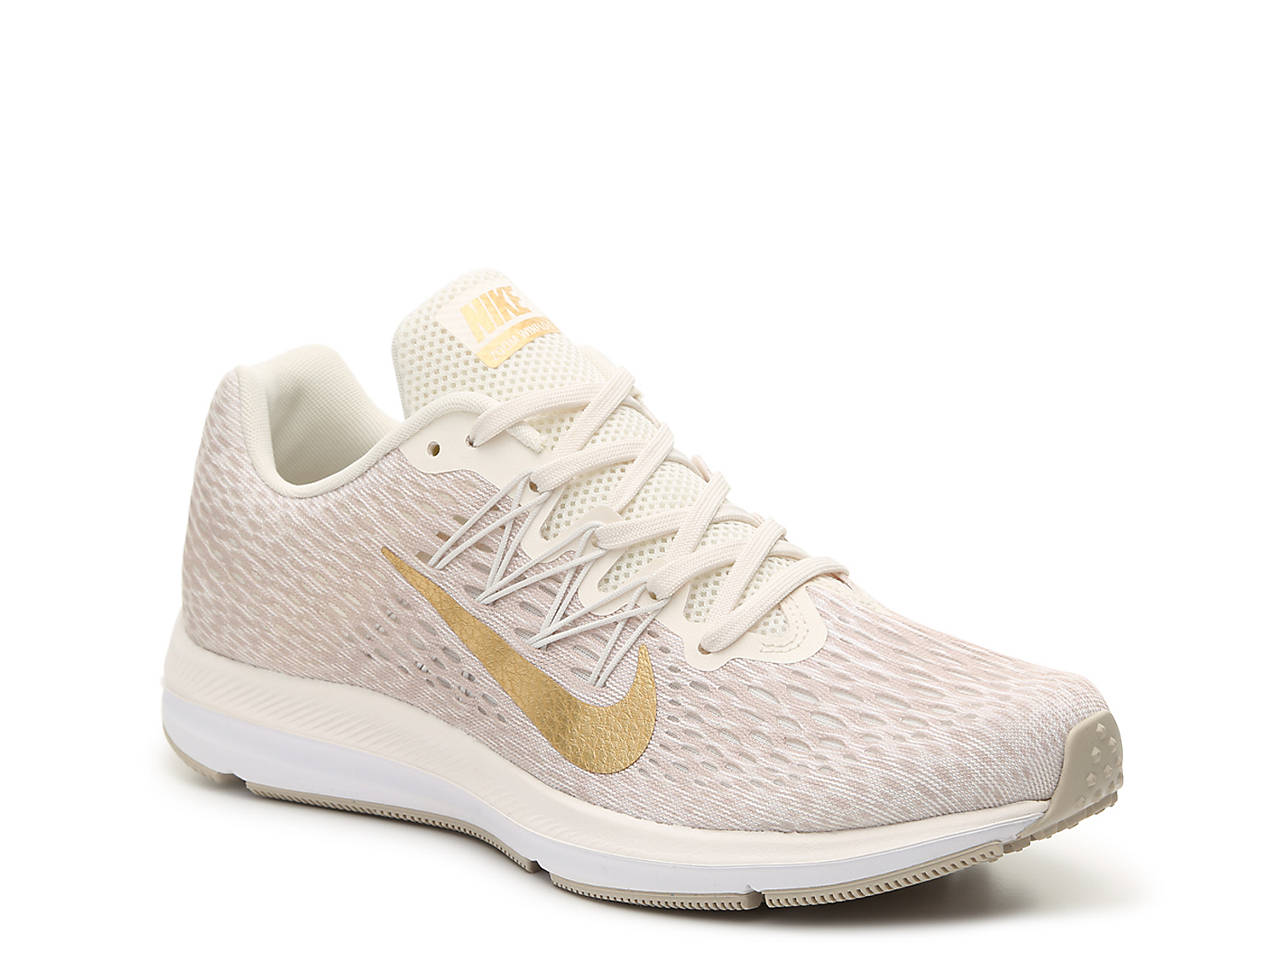 c2cd33a566c539 Nike Zoom Winflo 5 Running Shoe - Women s Women s Shoes